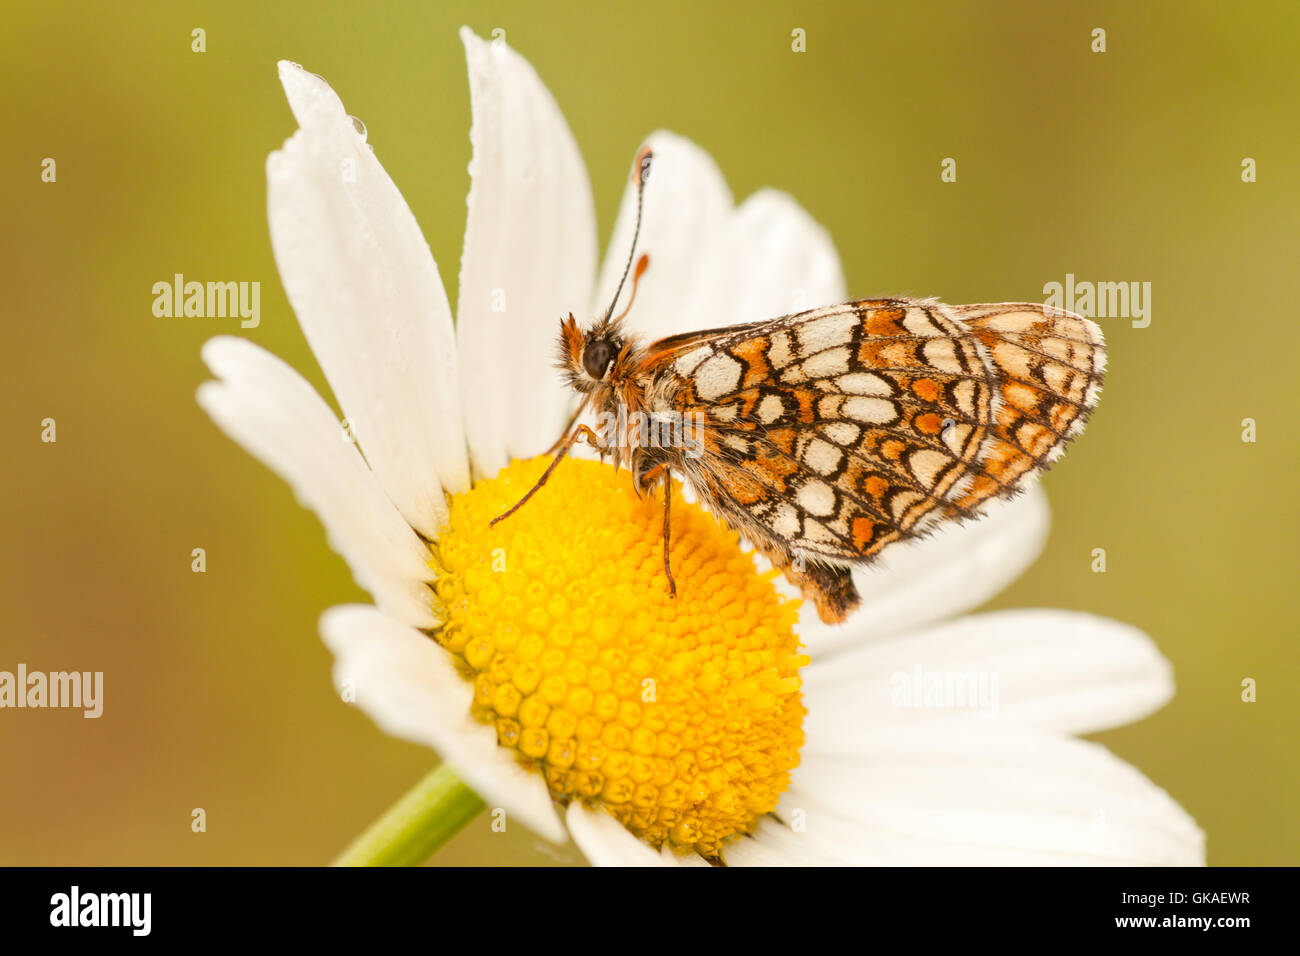 butterfly on daisy - Stock Image